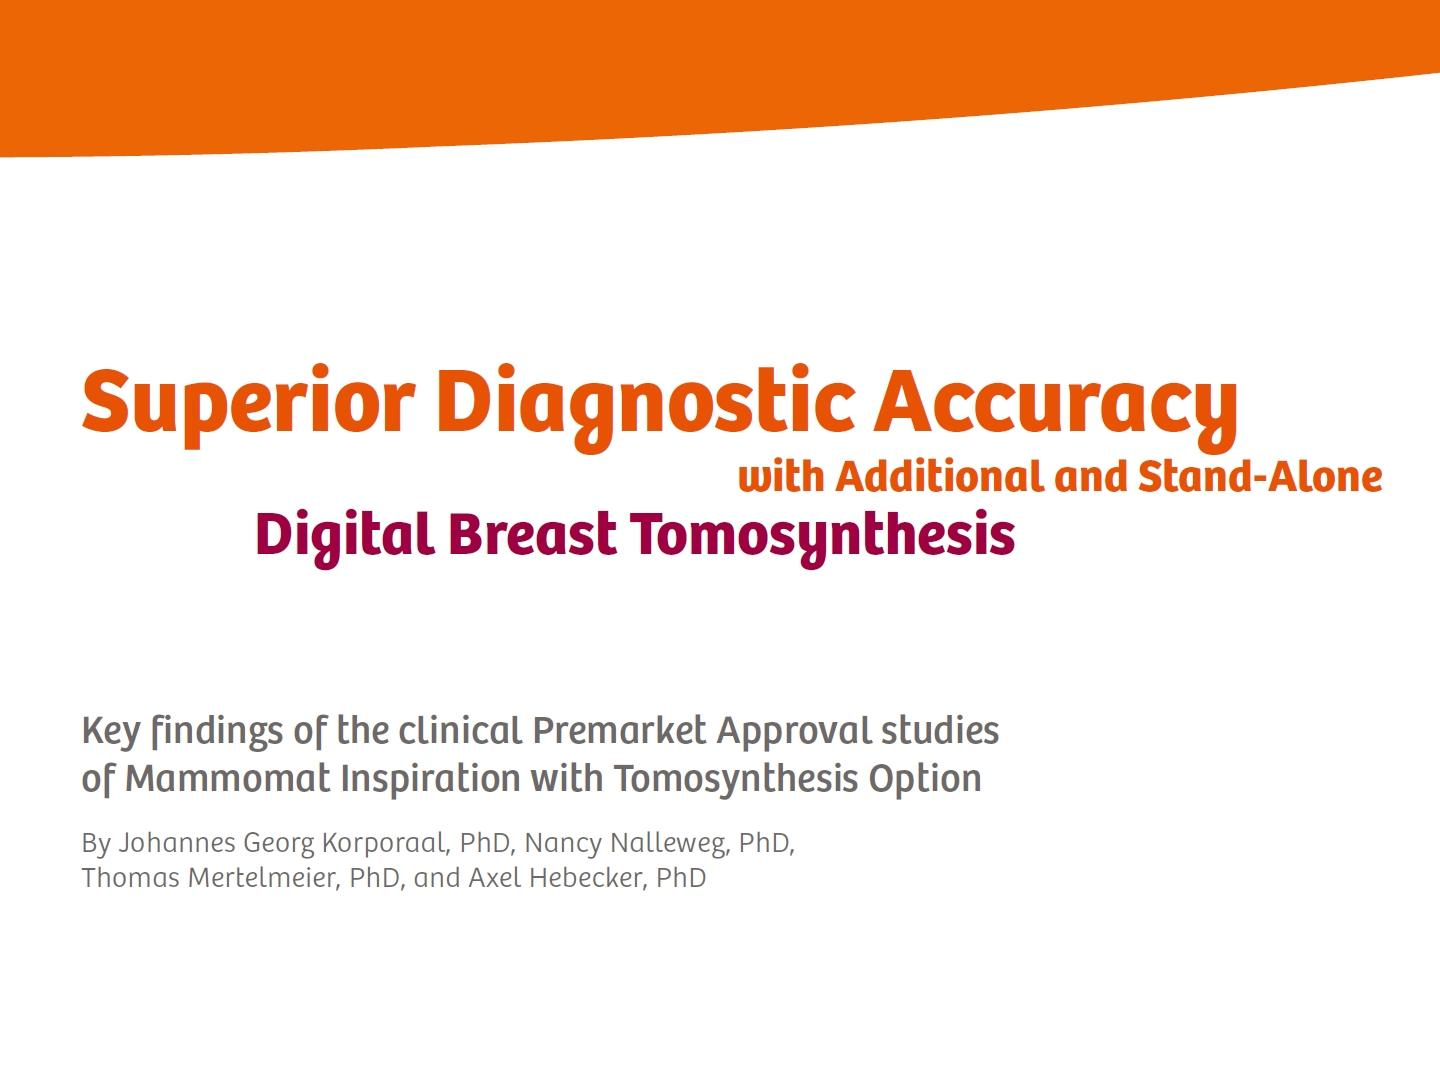 Superior Diagnostic Accuracy with Additional and Stand-Alone Digital Breast Tomosynthesis